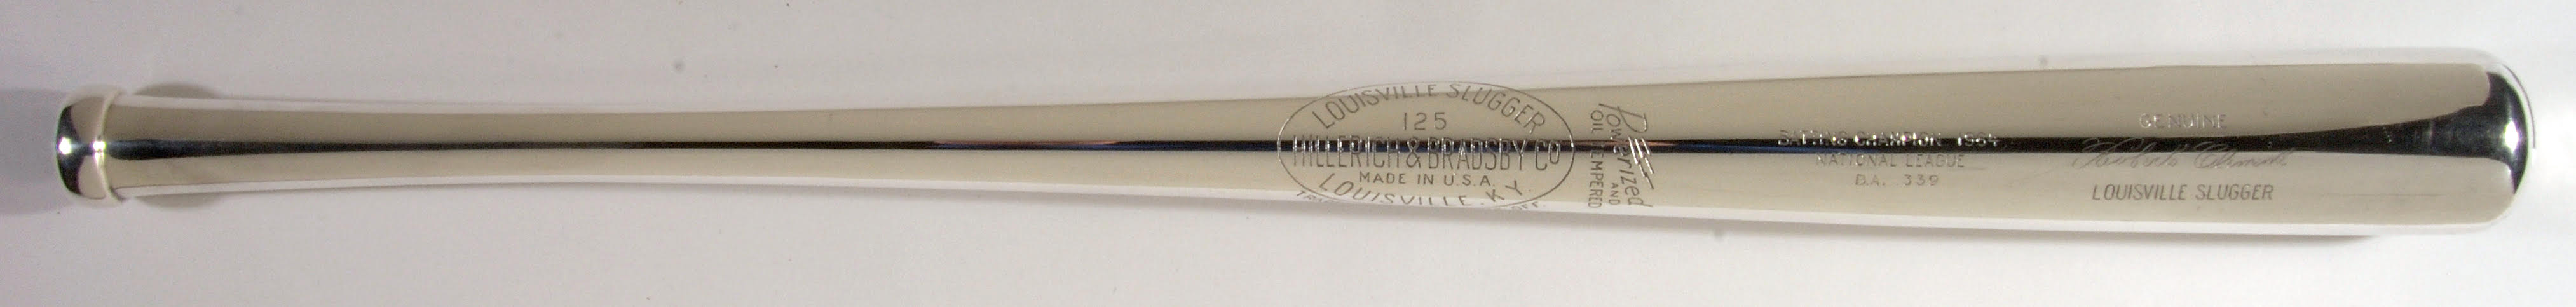 A National League Championship Silver Bat award, given to Roberto Clemente in 1967. Hunt Auctions sold it in July 2017, during the All-Star festivities in Miami, for $420,000--a record for a silver bat award at auction.